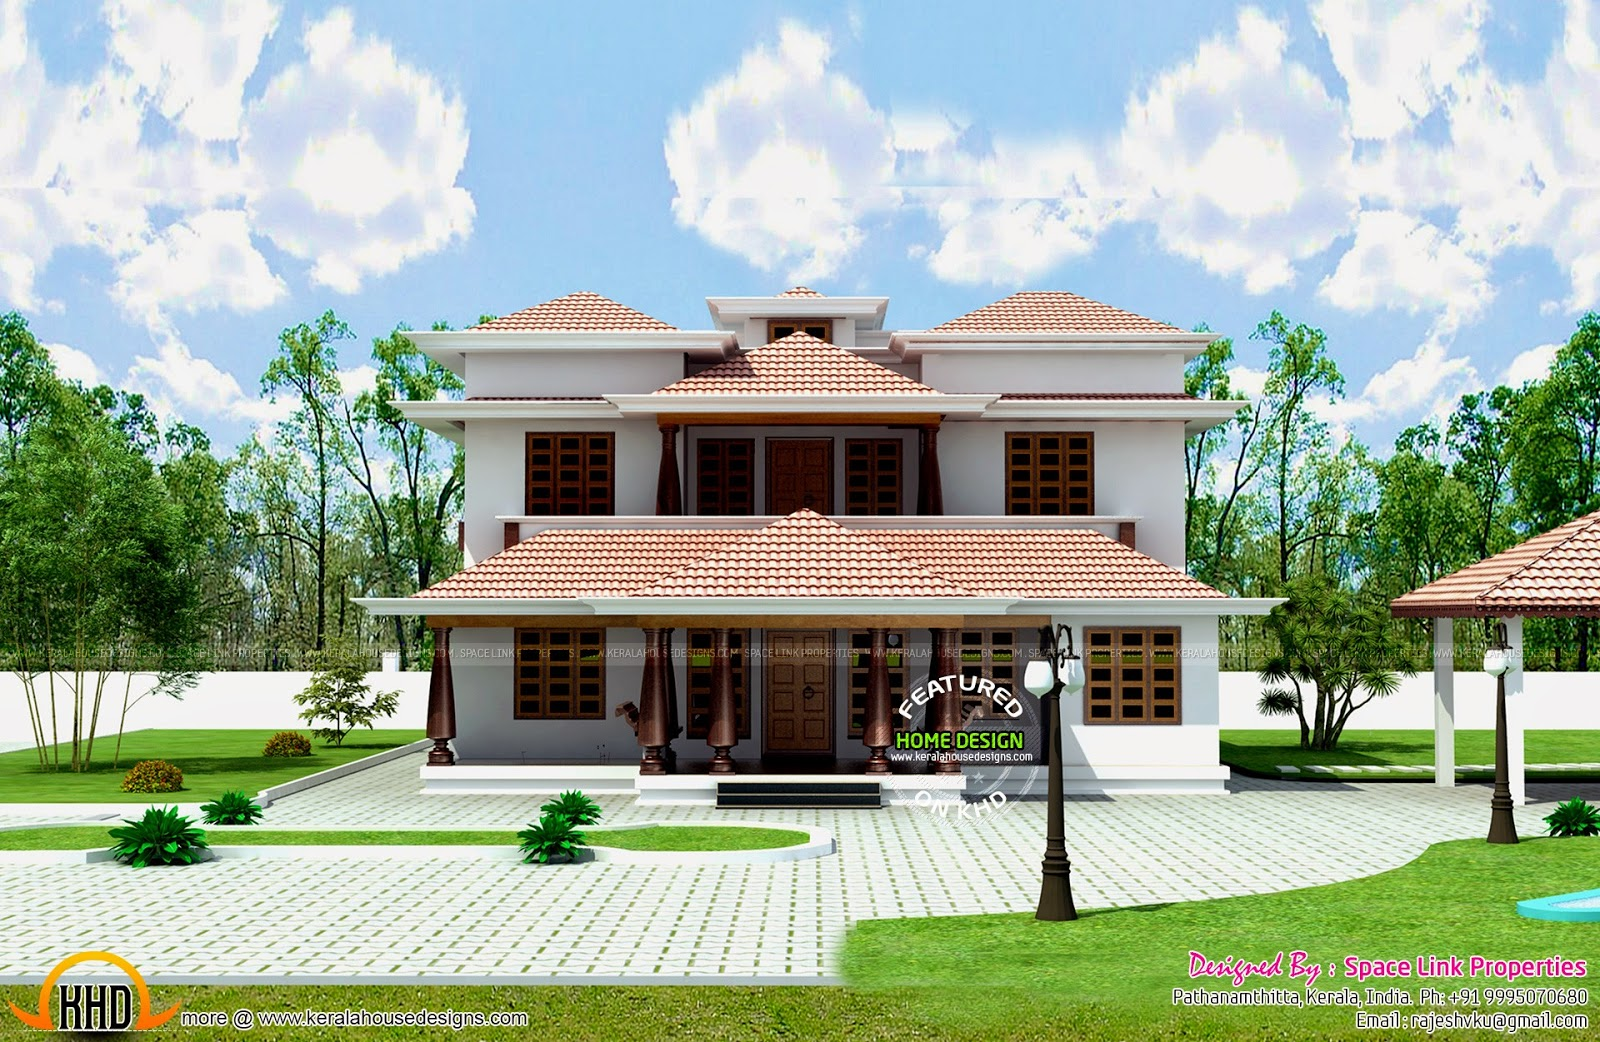 Typical kerala traditional house kerala home design and for Traditional home designs